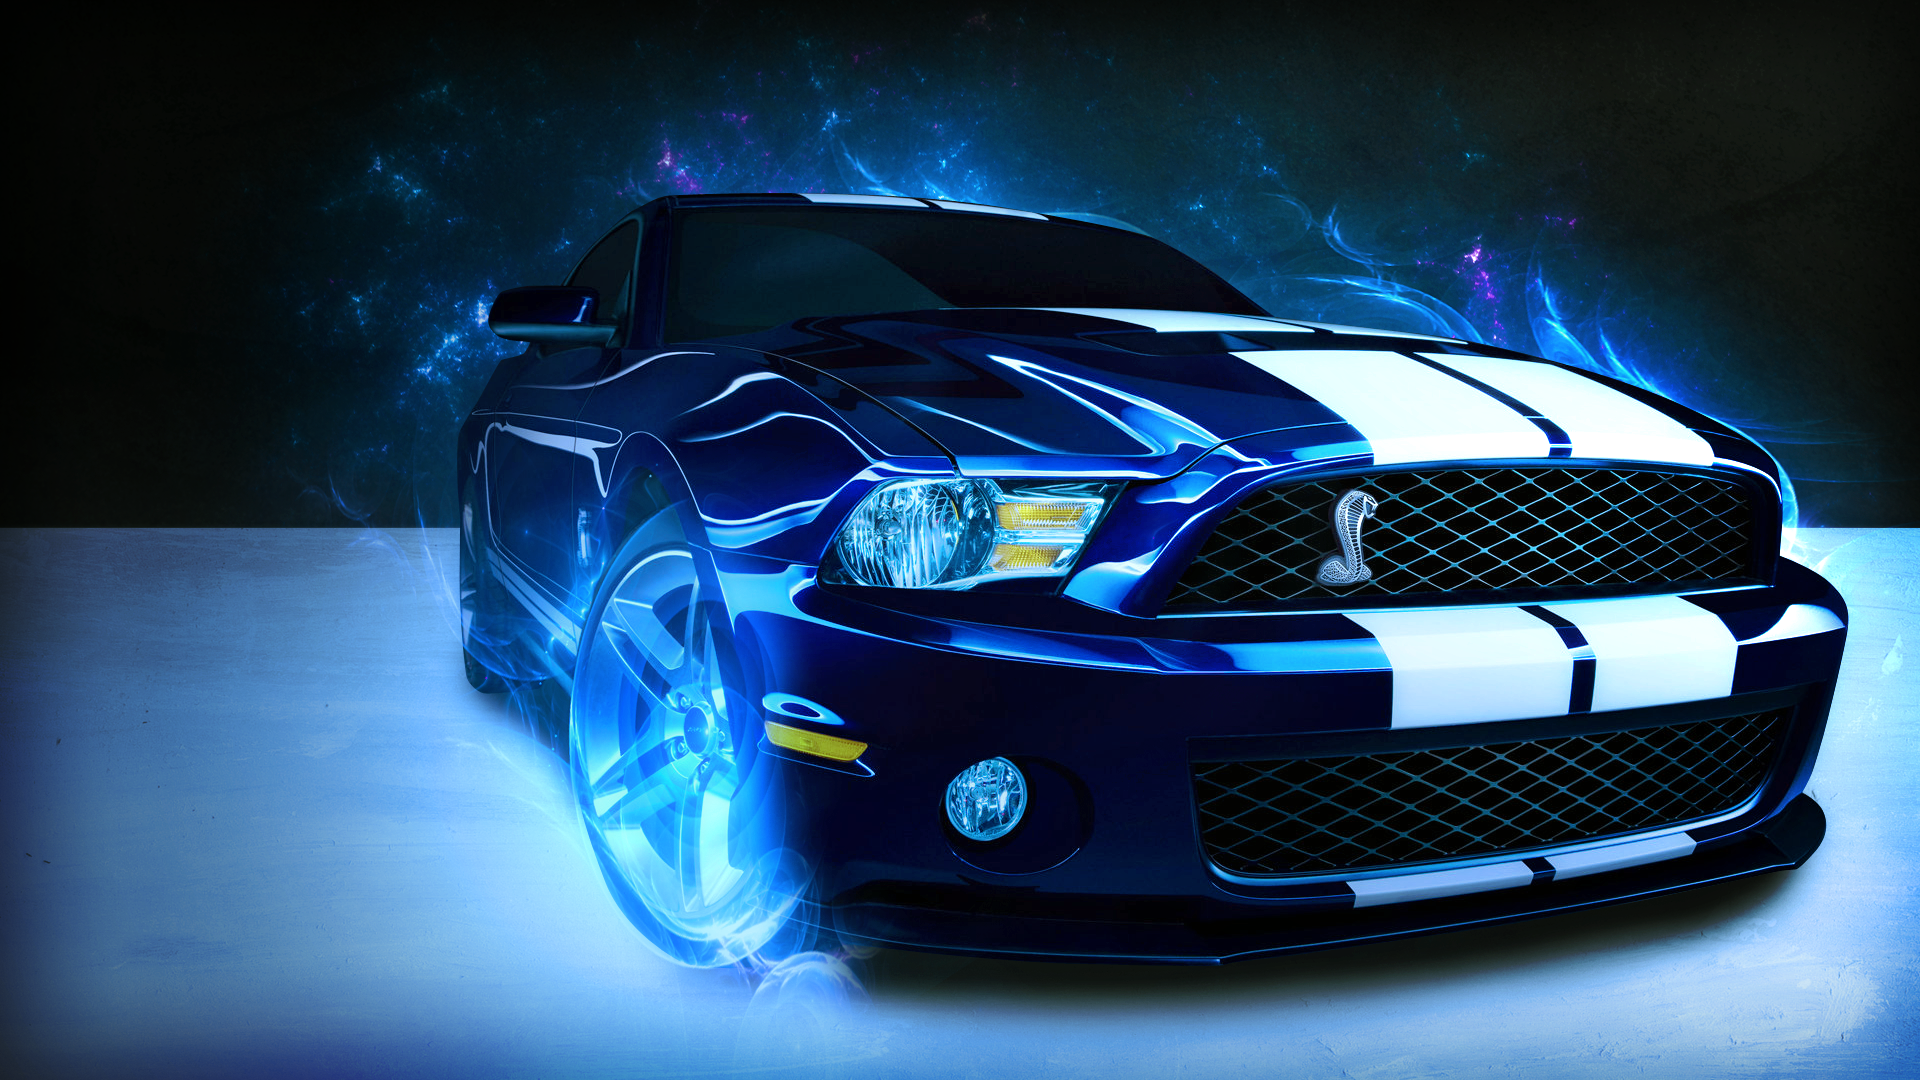 shelby mustang 1080p wallpaper by markydman customization wallpaper 1920x1080